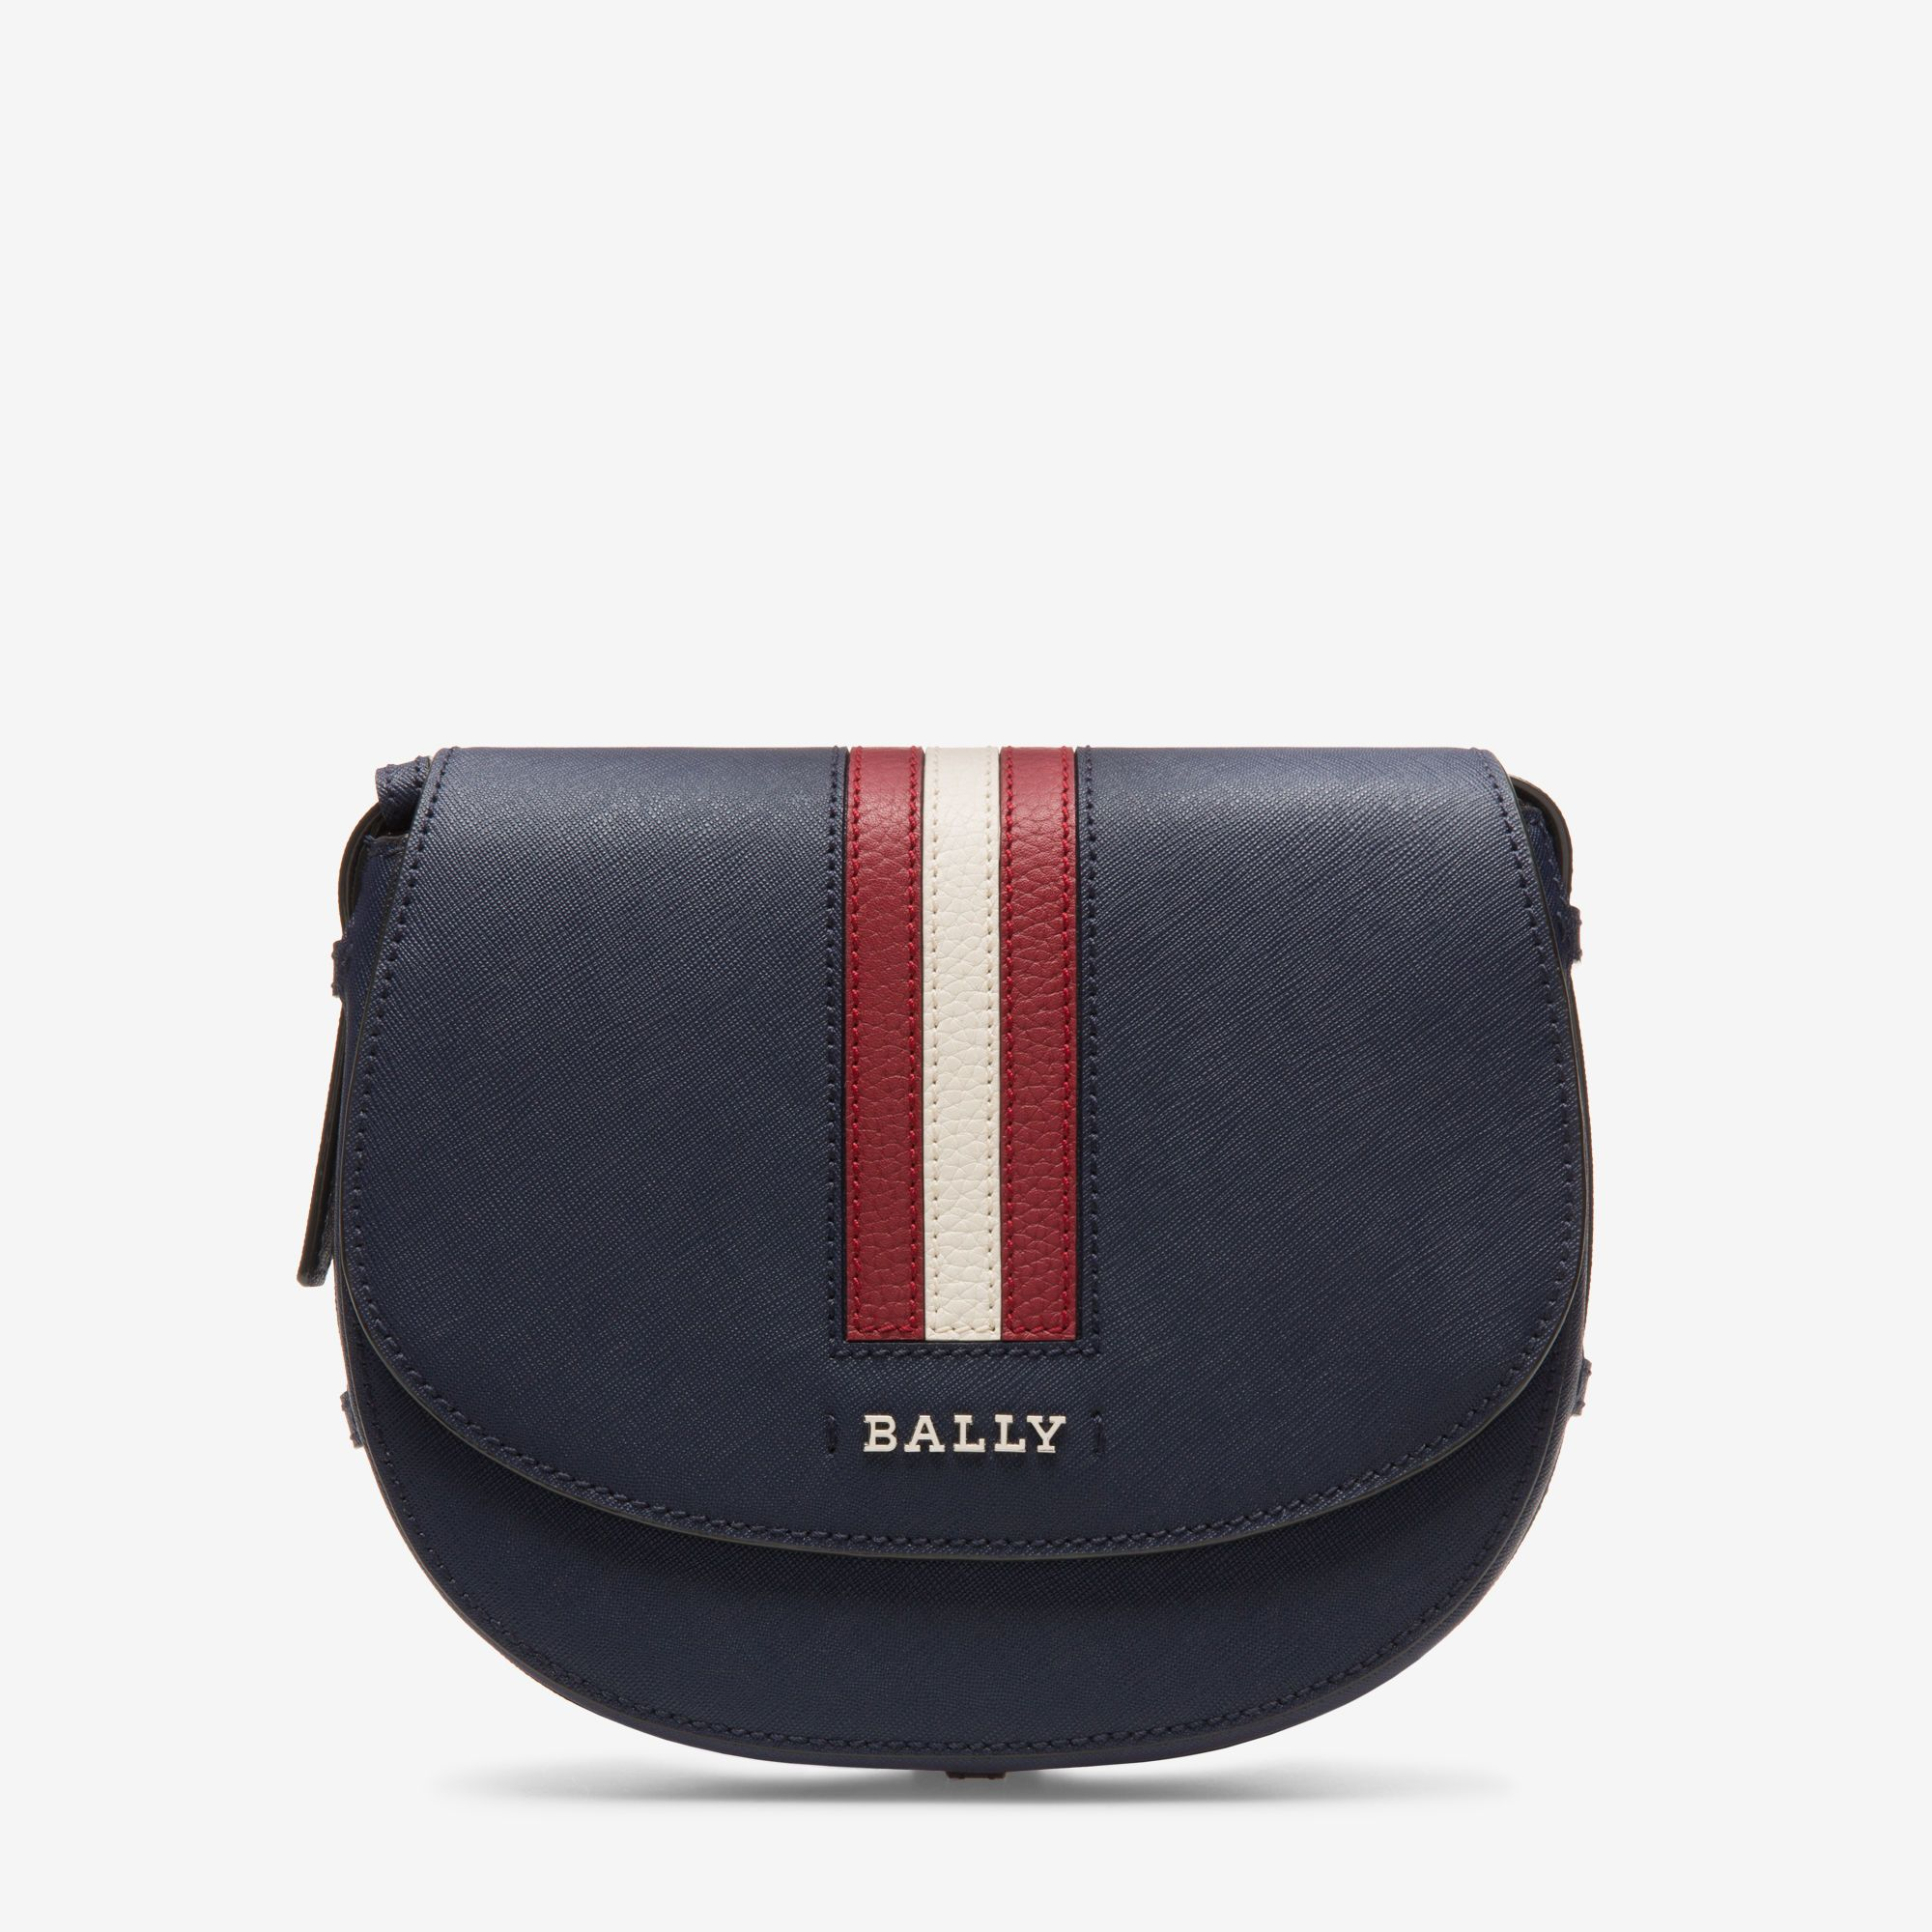 b0e44a1f0c43 Bally SUPRA CROSSBODY | Mommy's Wish List | Leather crossbody bag ...